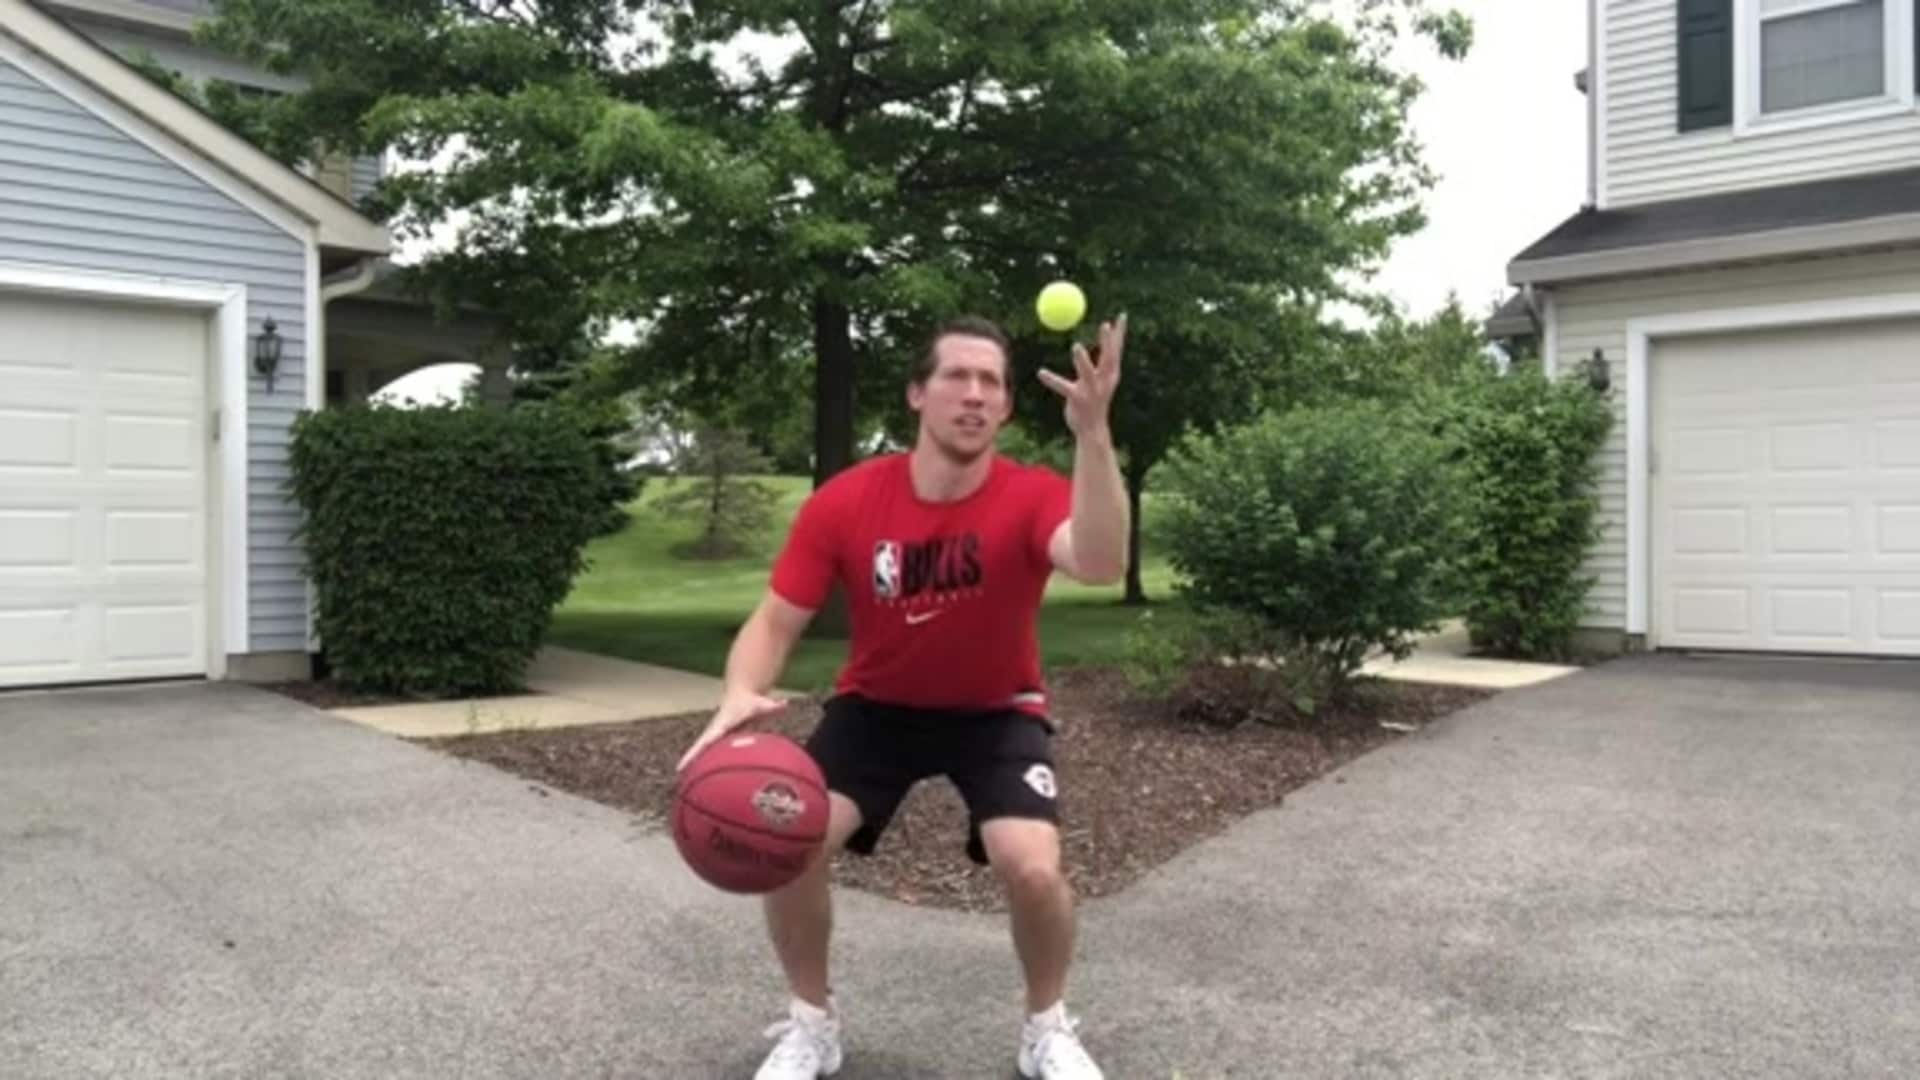 Youth Hoops Basketball Skills At Home: Crossover with Tennis Ball Toss